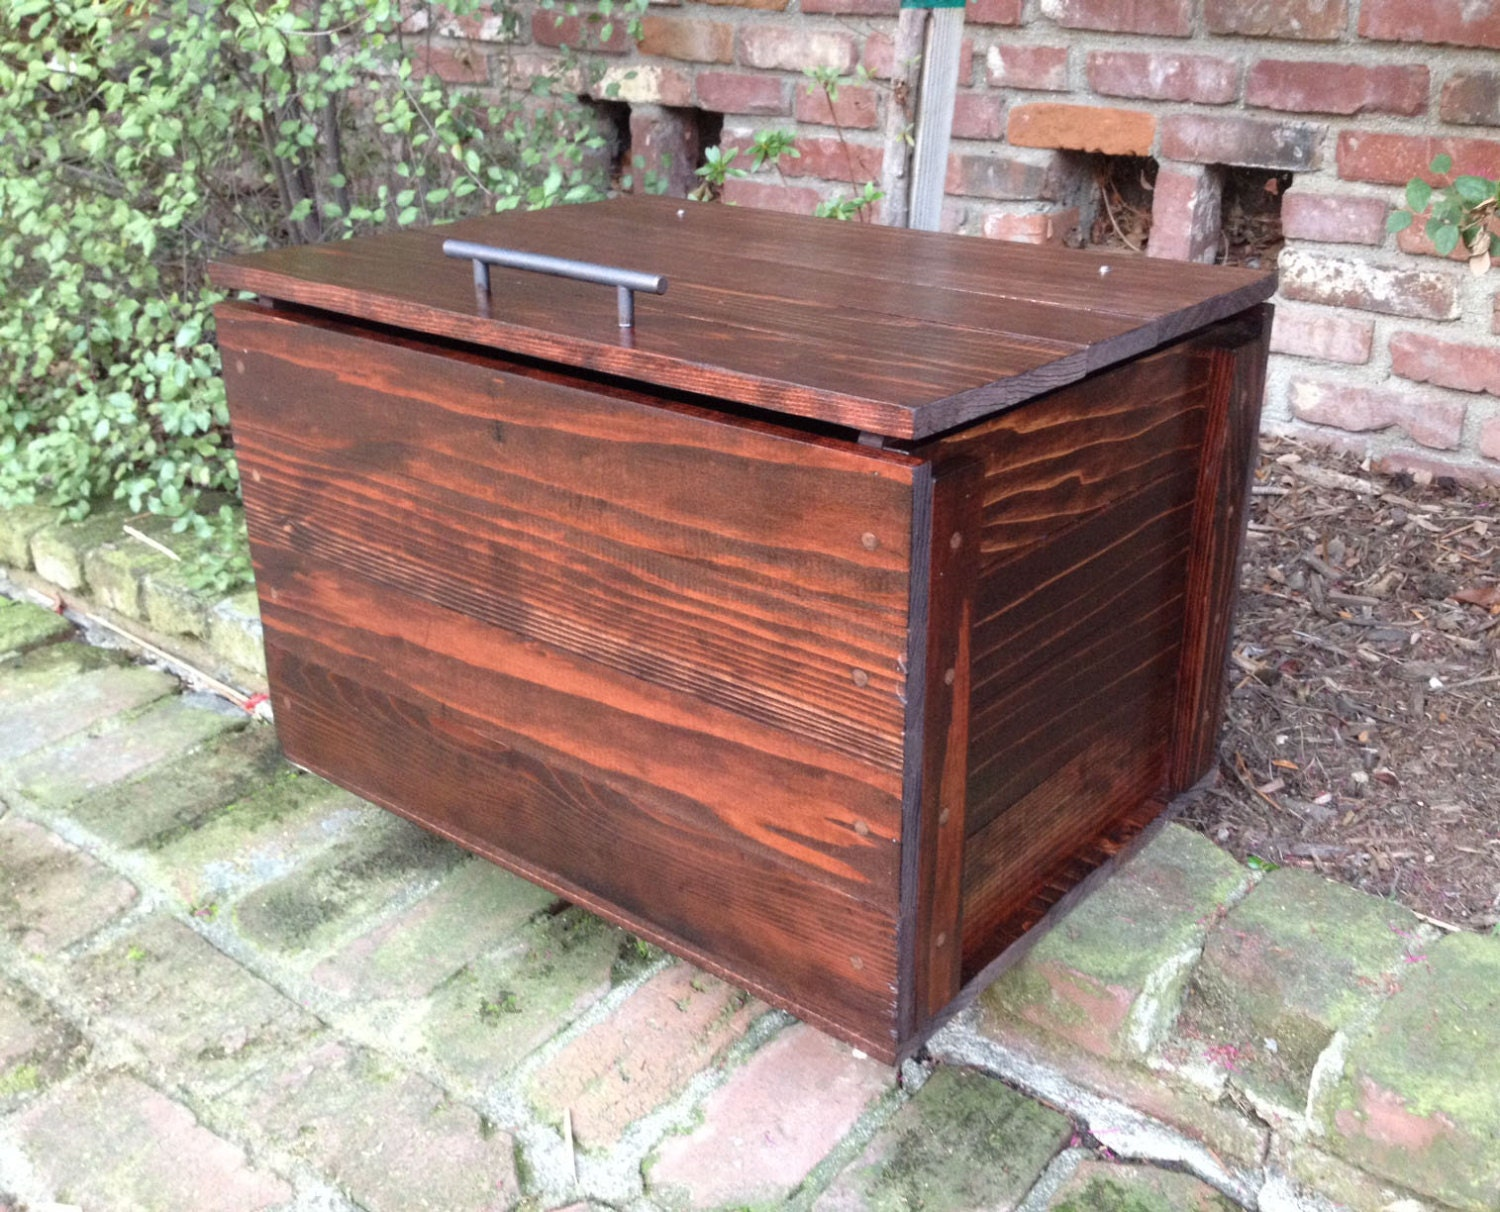 Redwood chest rustic style multi use blanket storage for Uses for wooden boxes